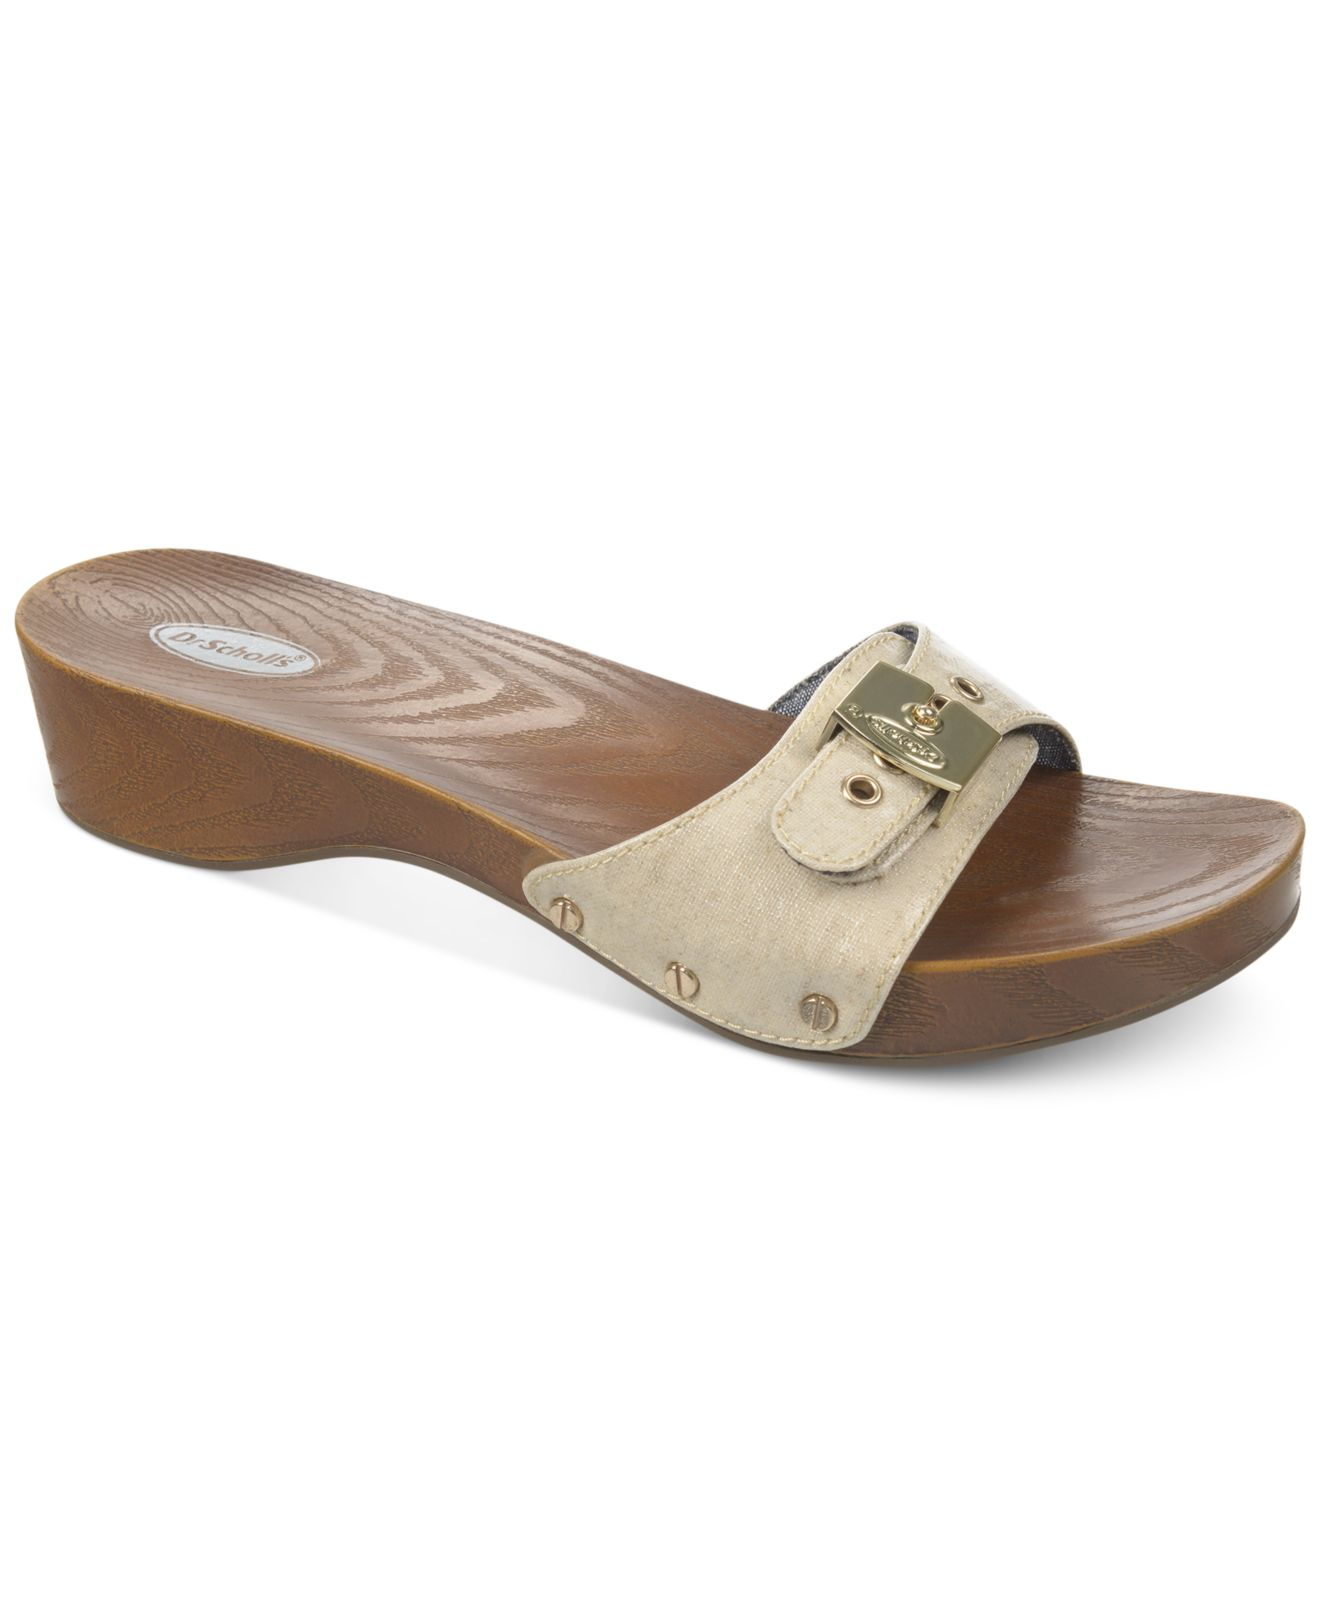 Find great deals on eBay for dr scholls shoes and dr scholls mens shoes. Shop with confidence.